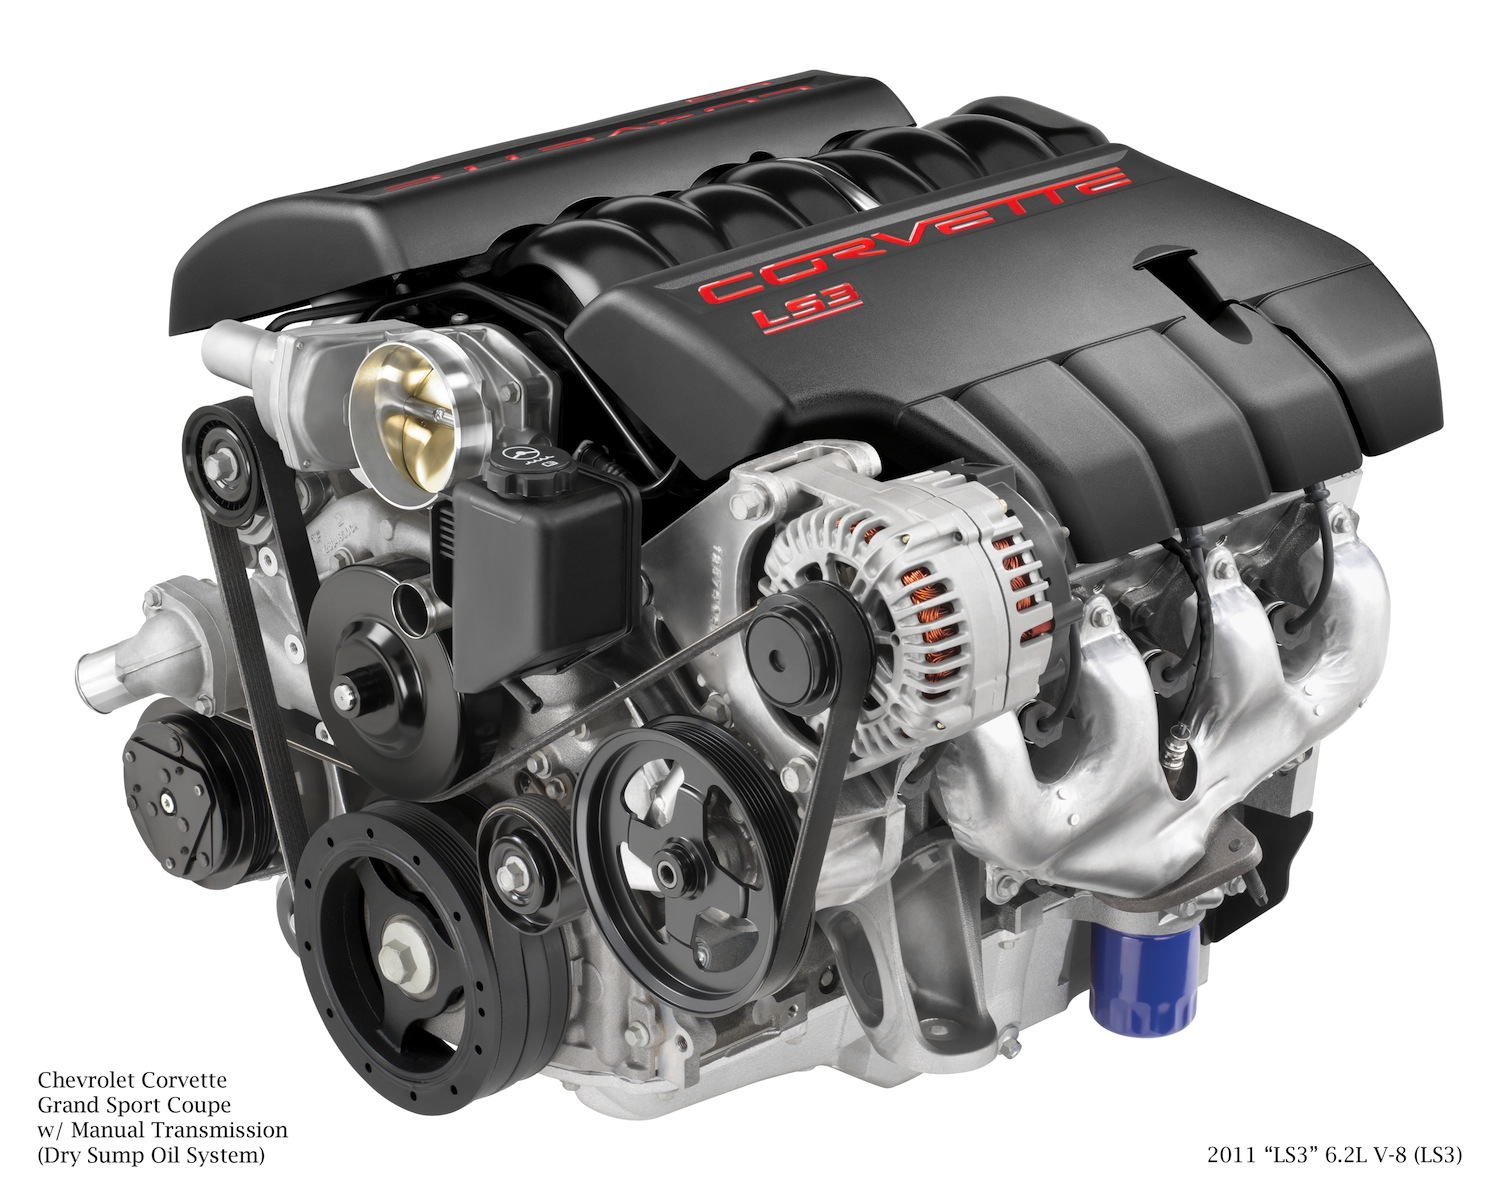 hight resolution of gm 6 2 liter v8 small block ls3 engine info power specs wiki gm 2011